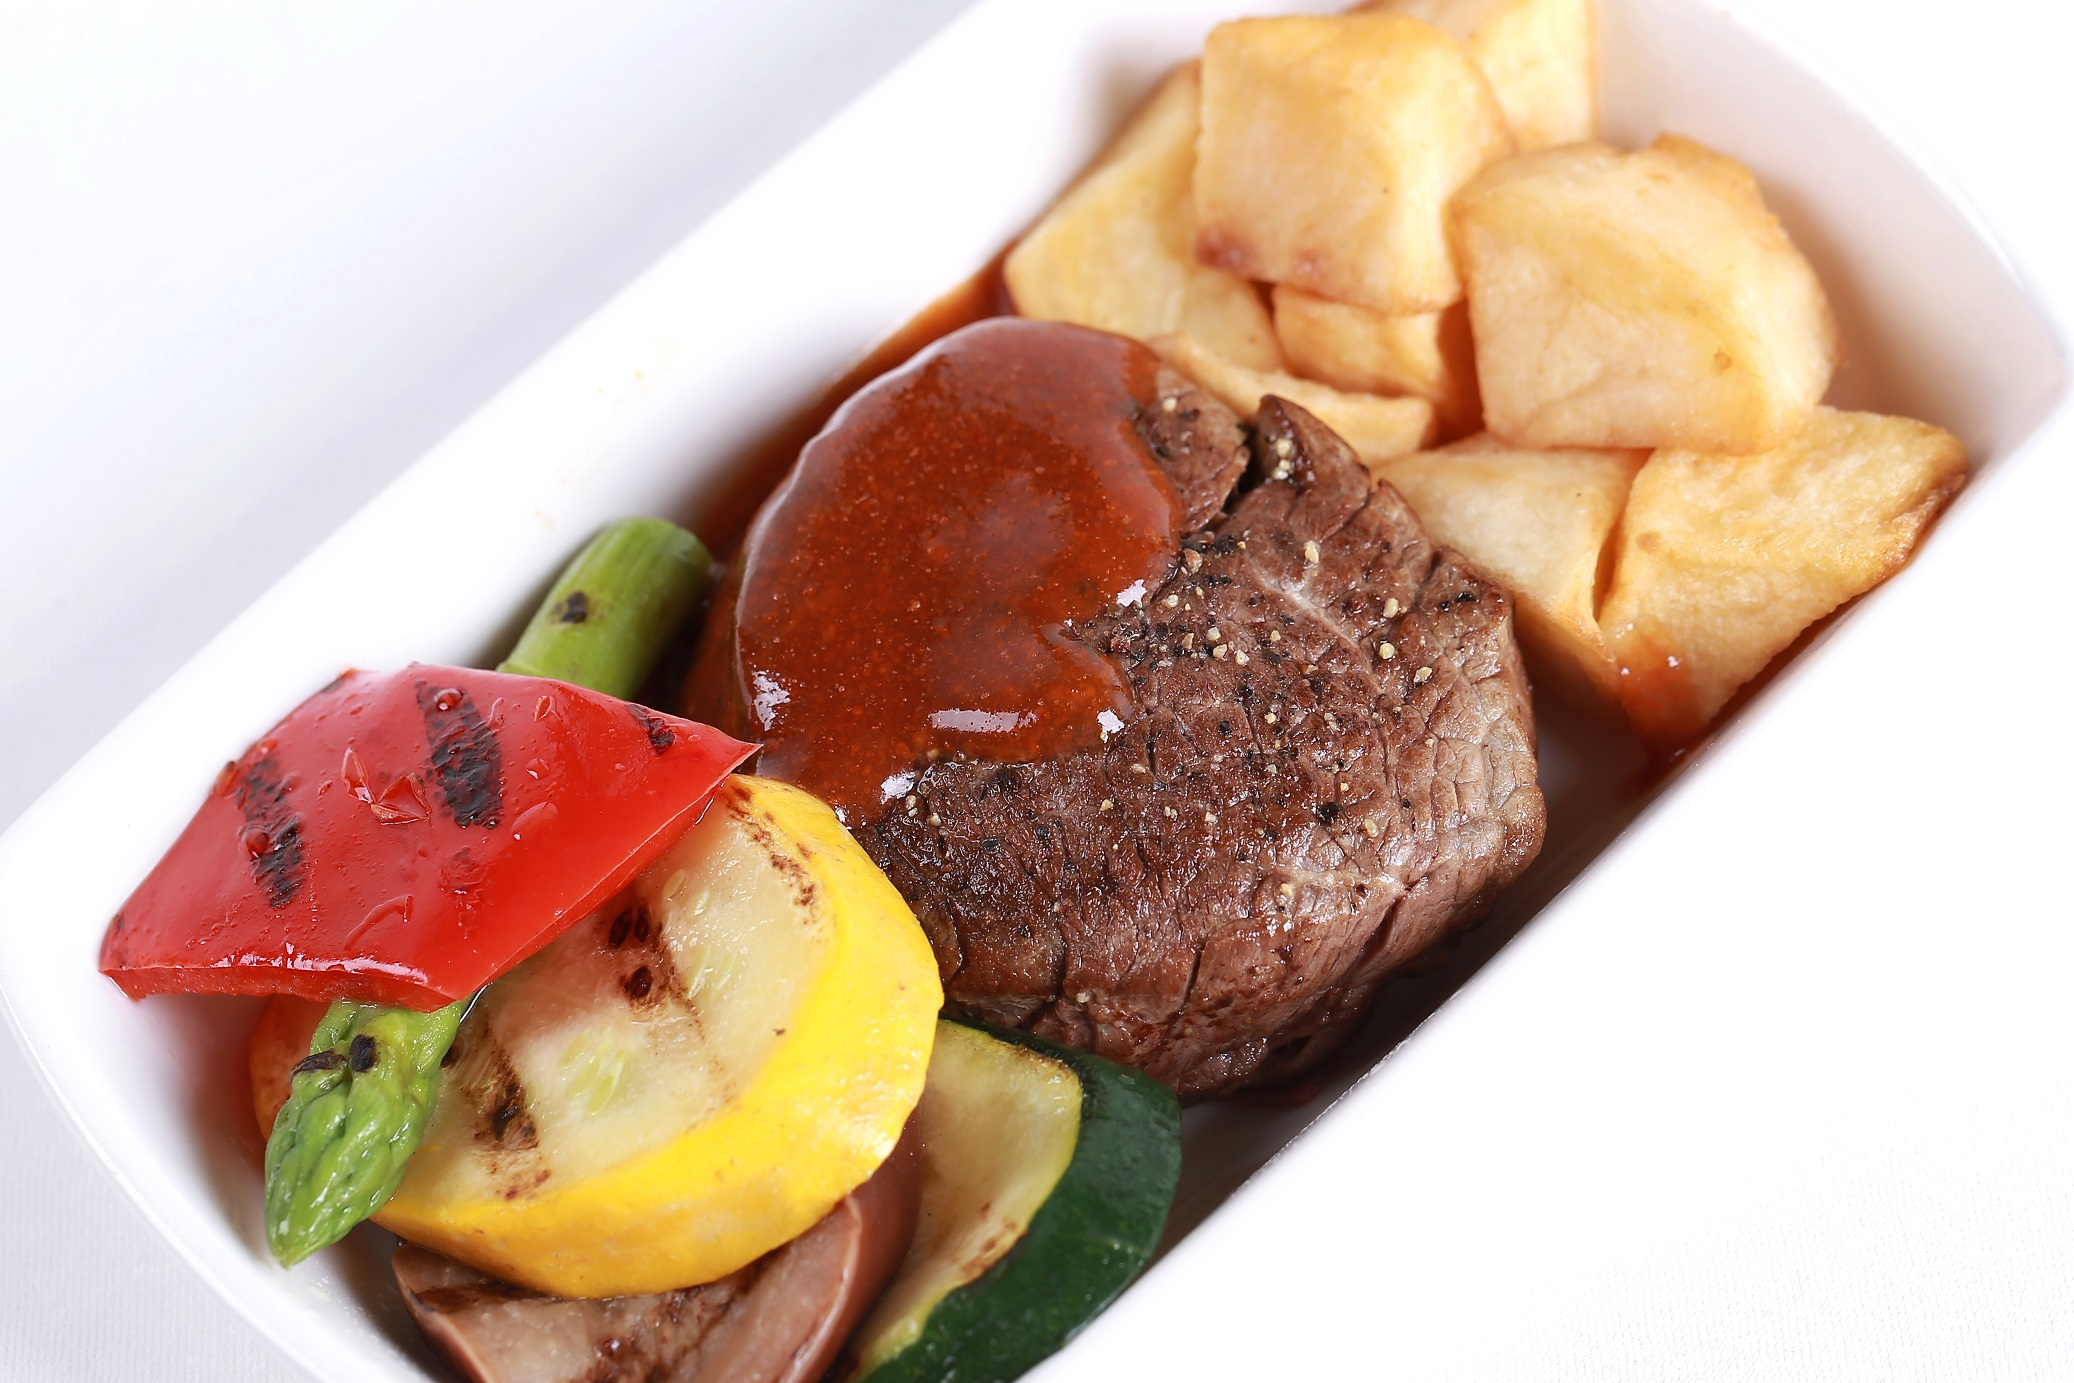 Grilled Australian beef tenderloin, roasted seasonal vegetables